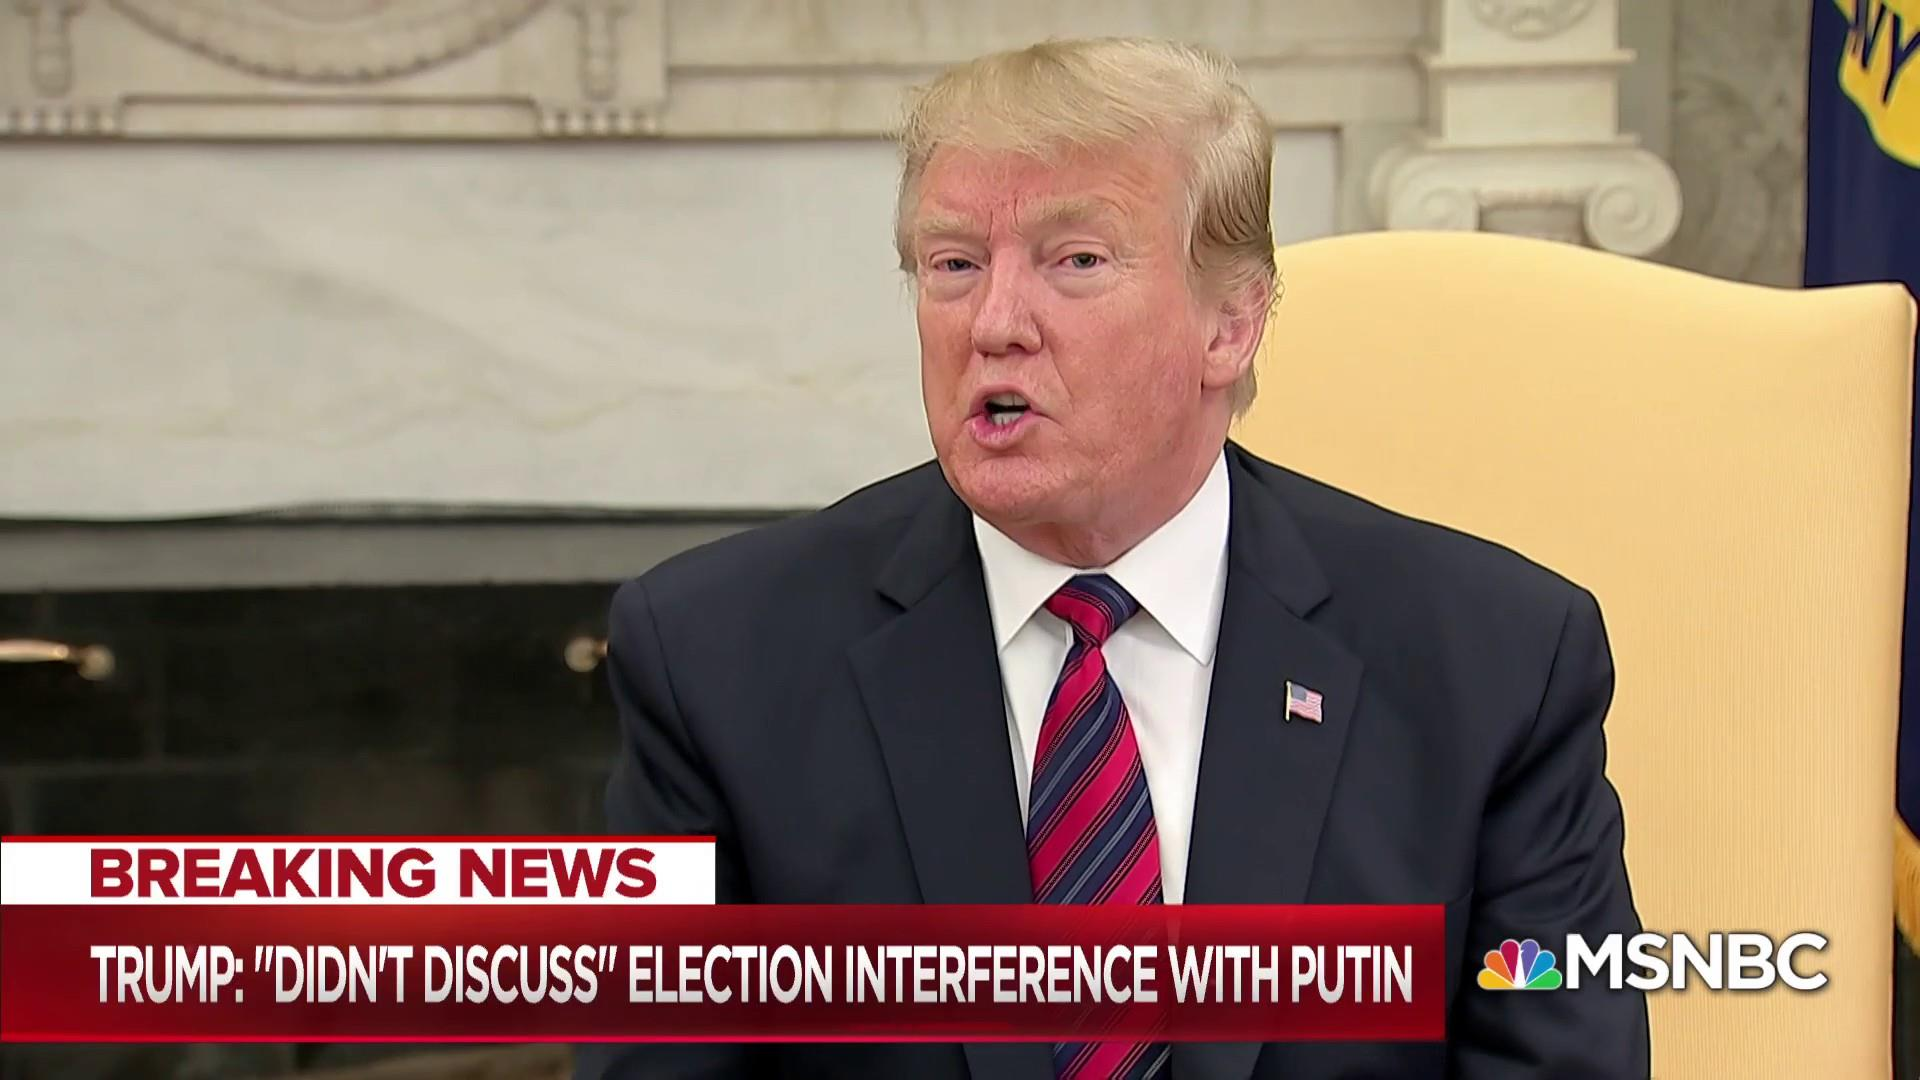 Trump & Putin agree to forget election interference